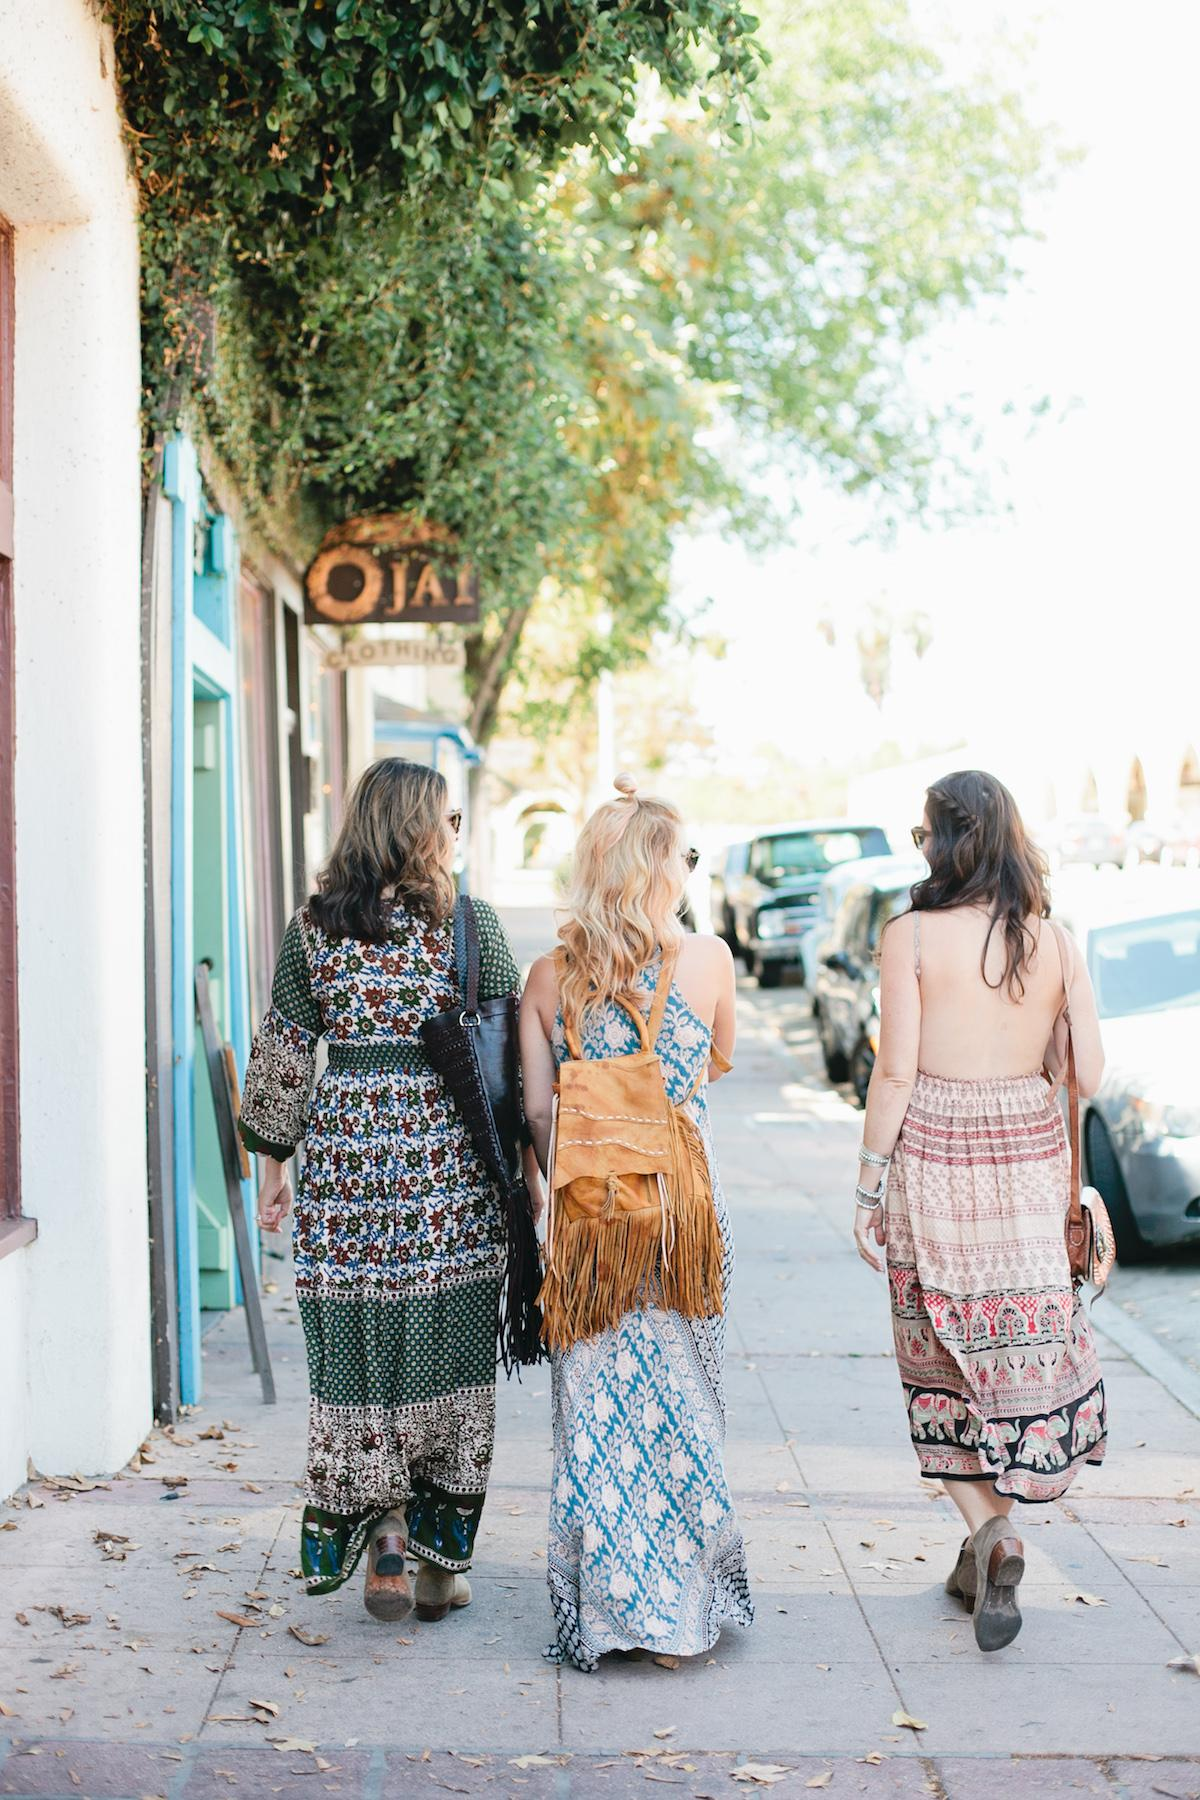 Girls Getaway in Ojai, California